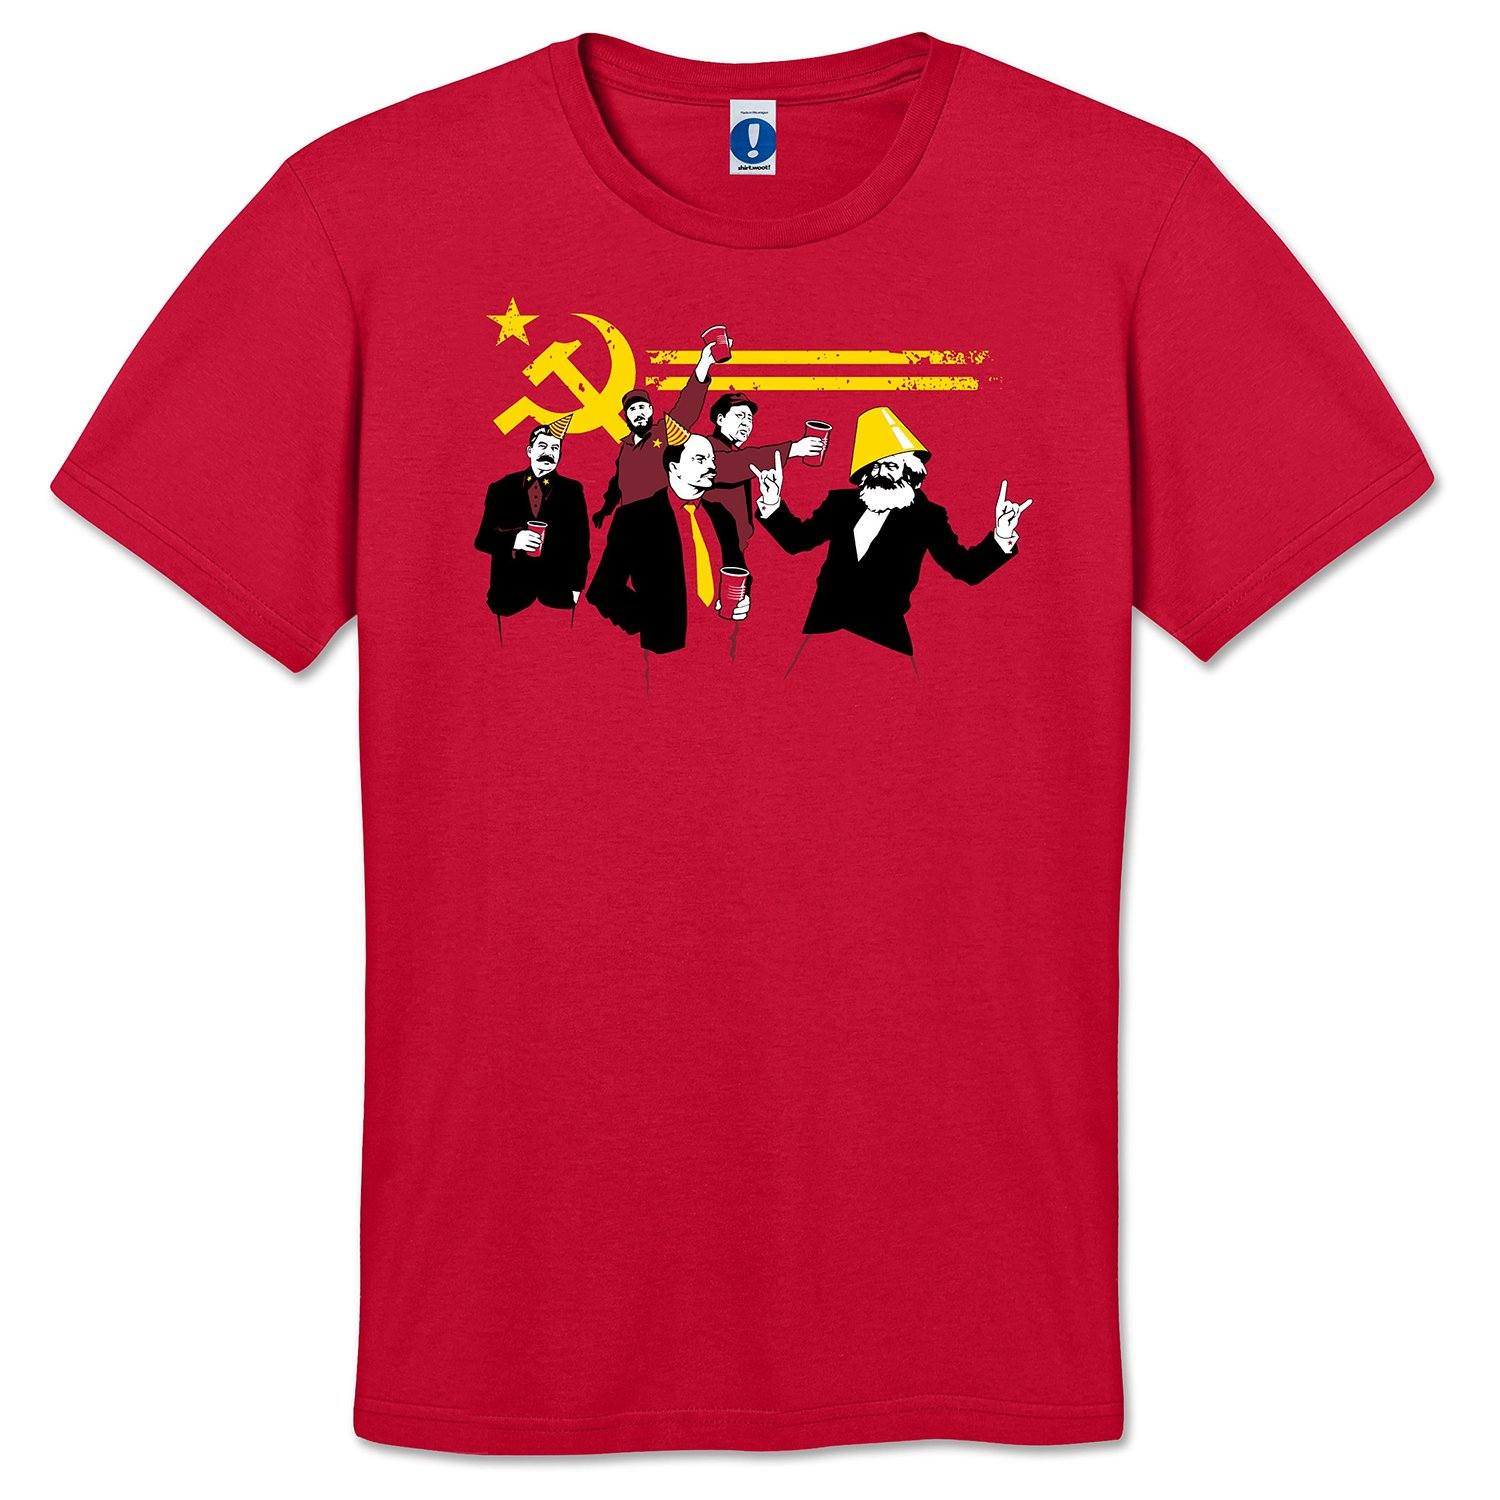 the communist party ts-hirt